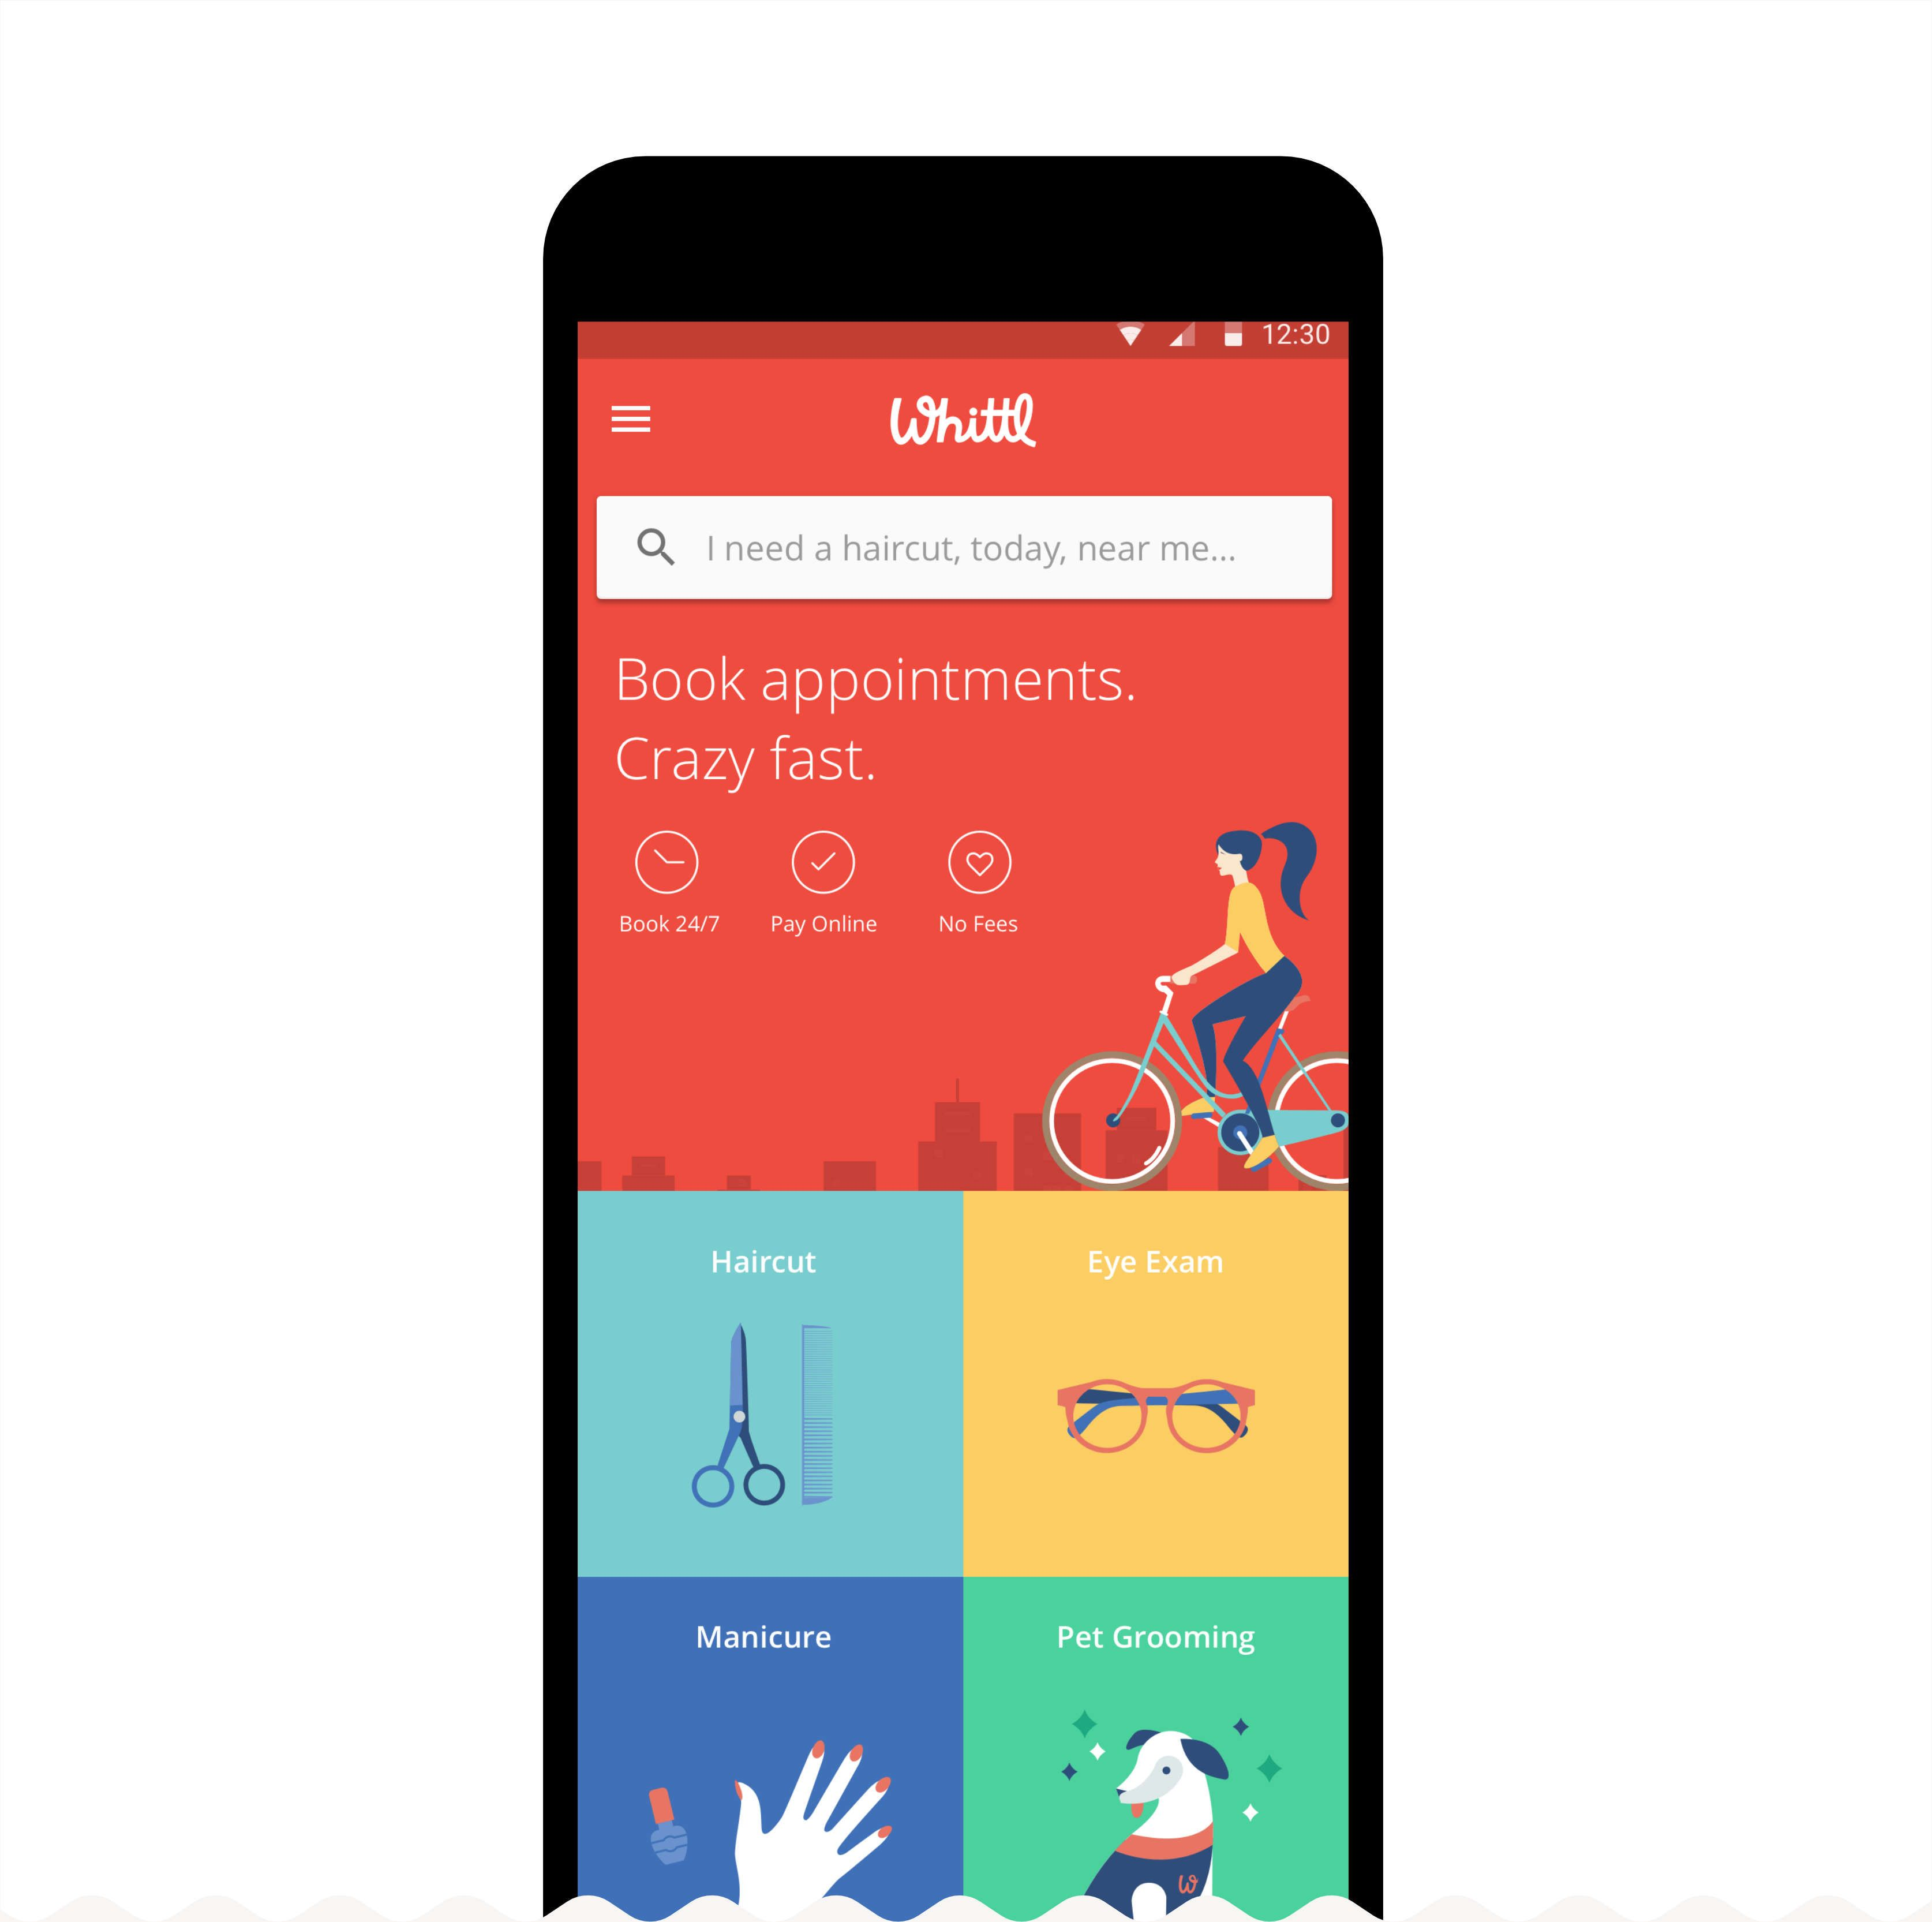 Heco Provided Ux And Visual Design For Whittls Android And Ios Apps